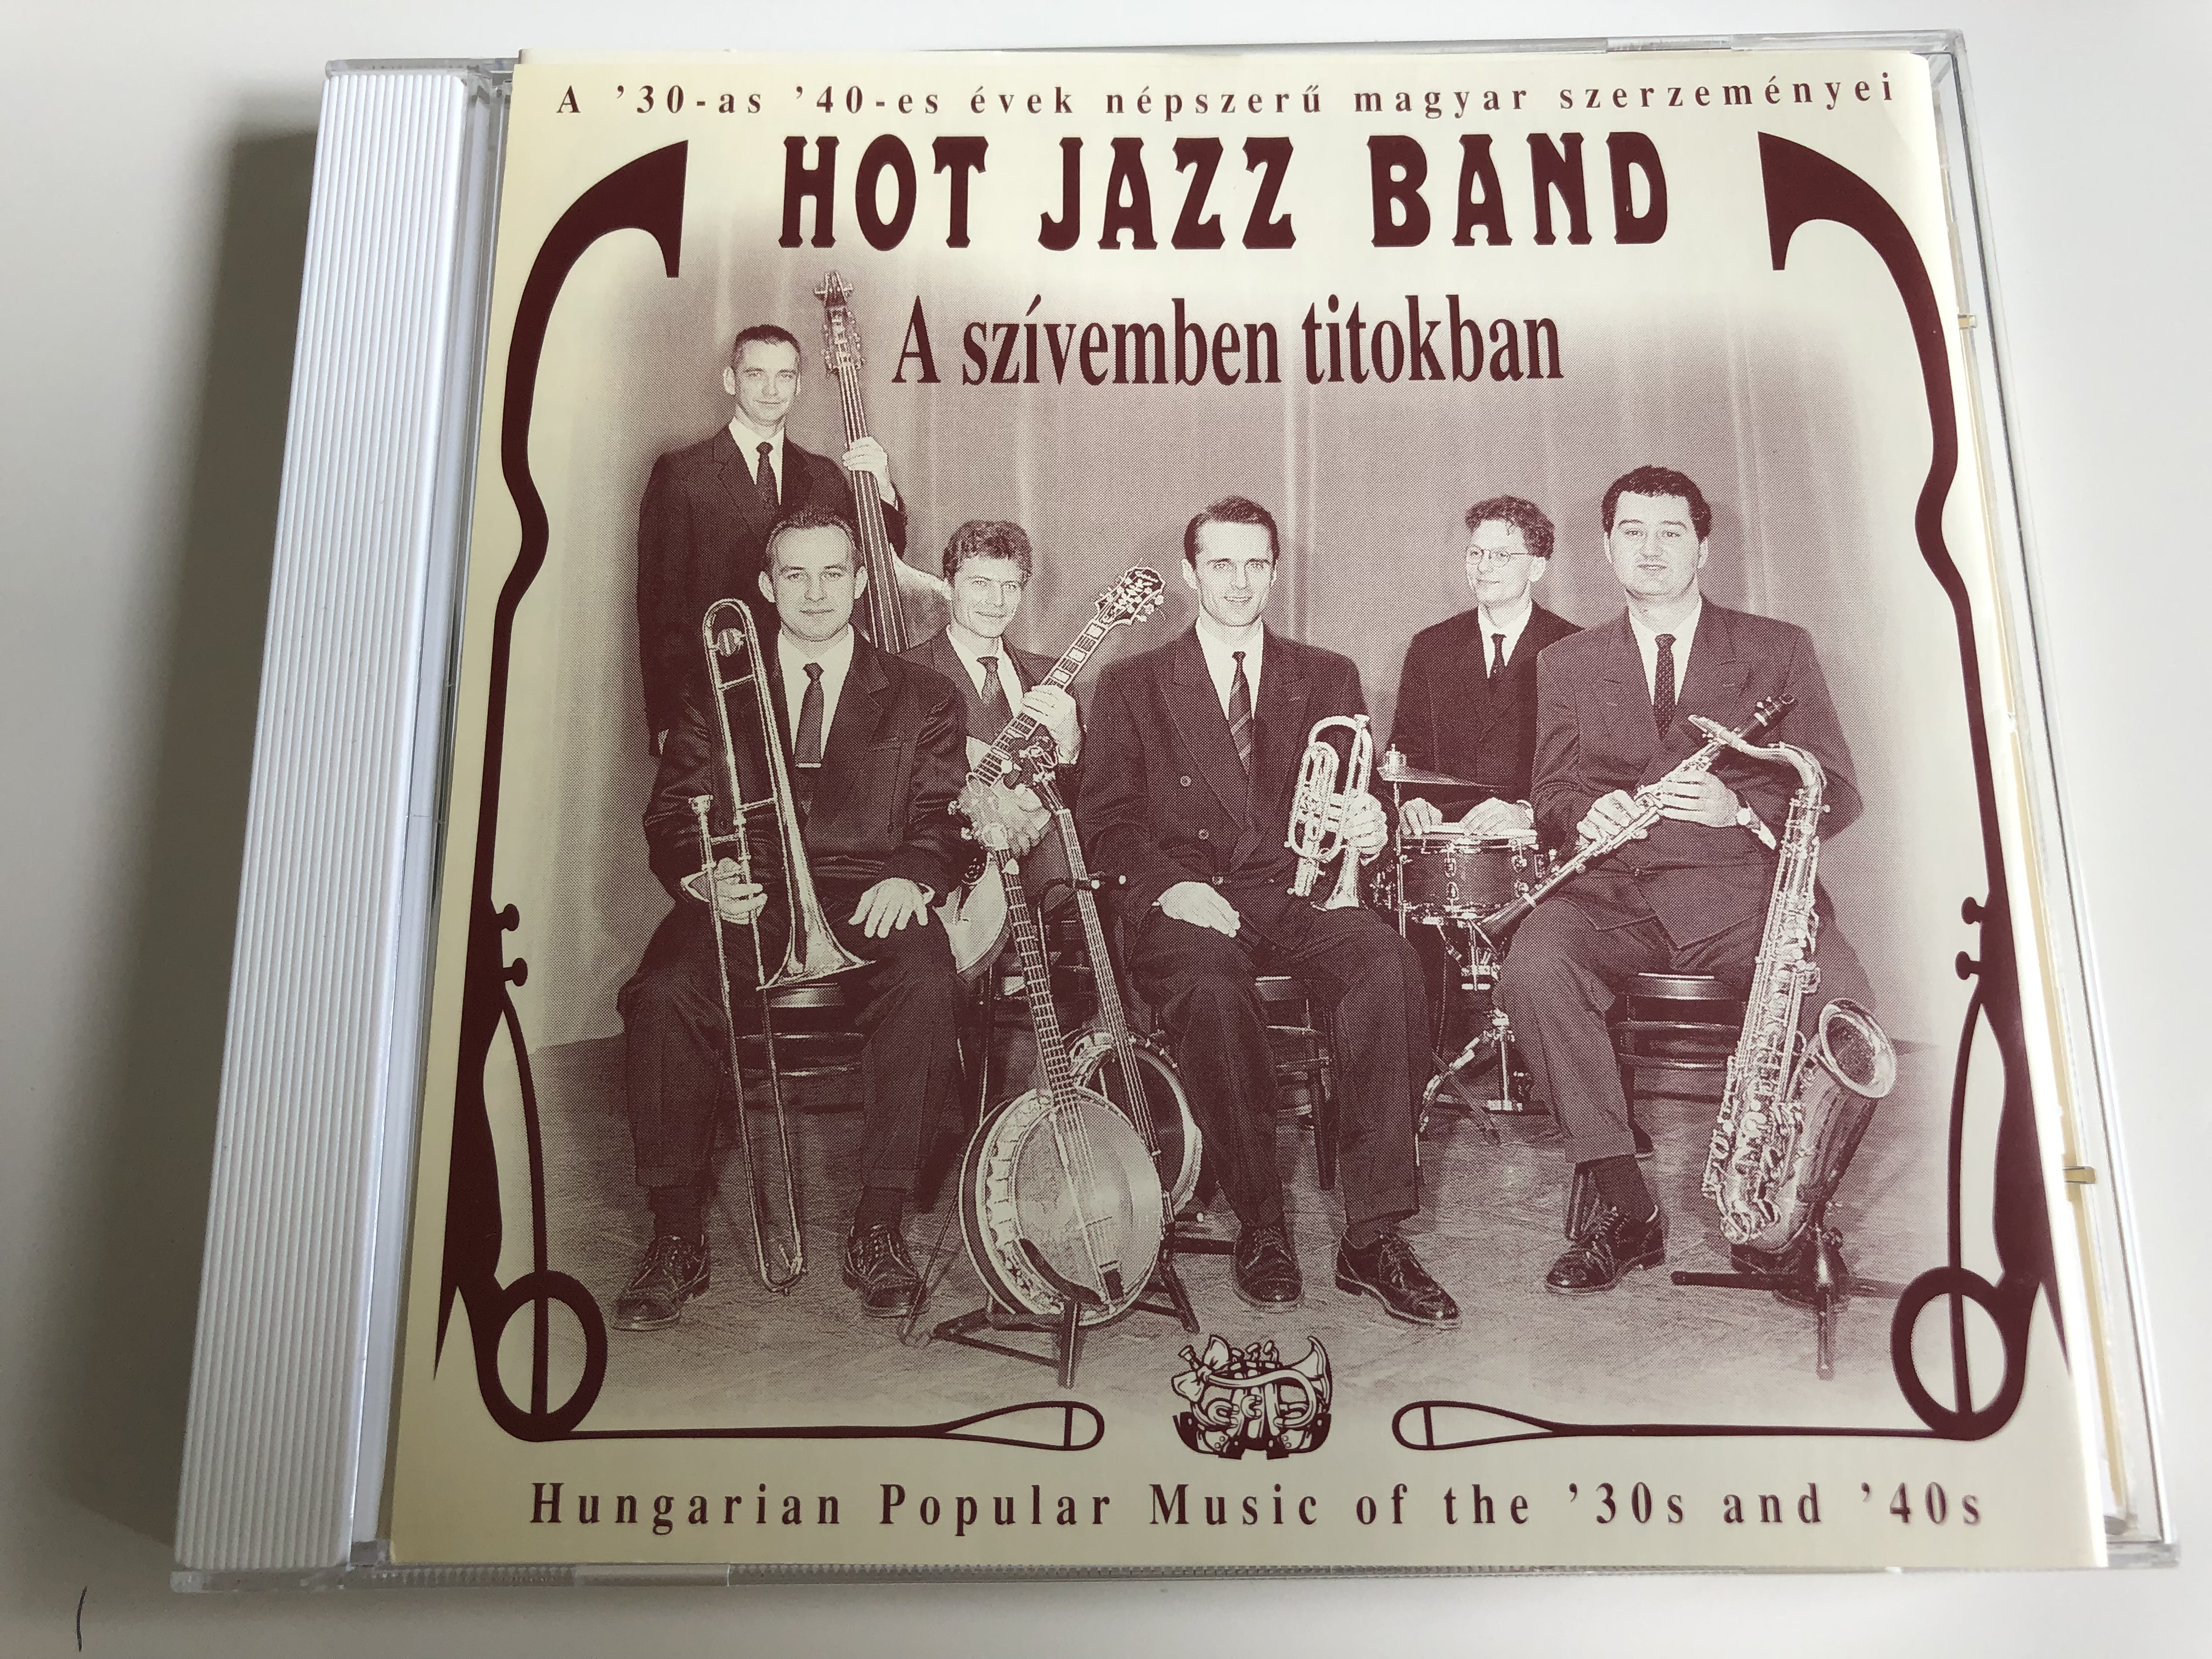 hot-jazz-band-a-sz-vemben-titokban-hungarian-popular-music-of-the-30s-and-40s-columbia-col-4897962-audio-cd-1998-1-.jpg